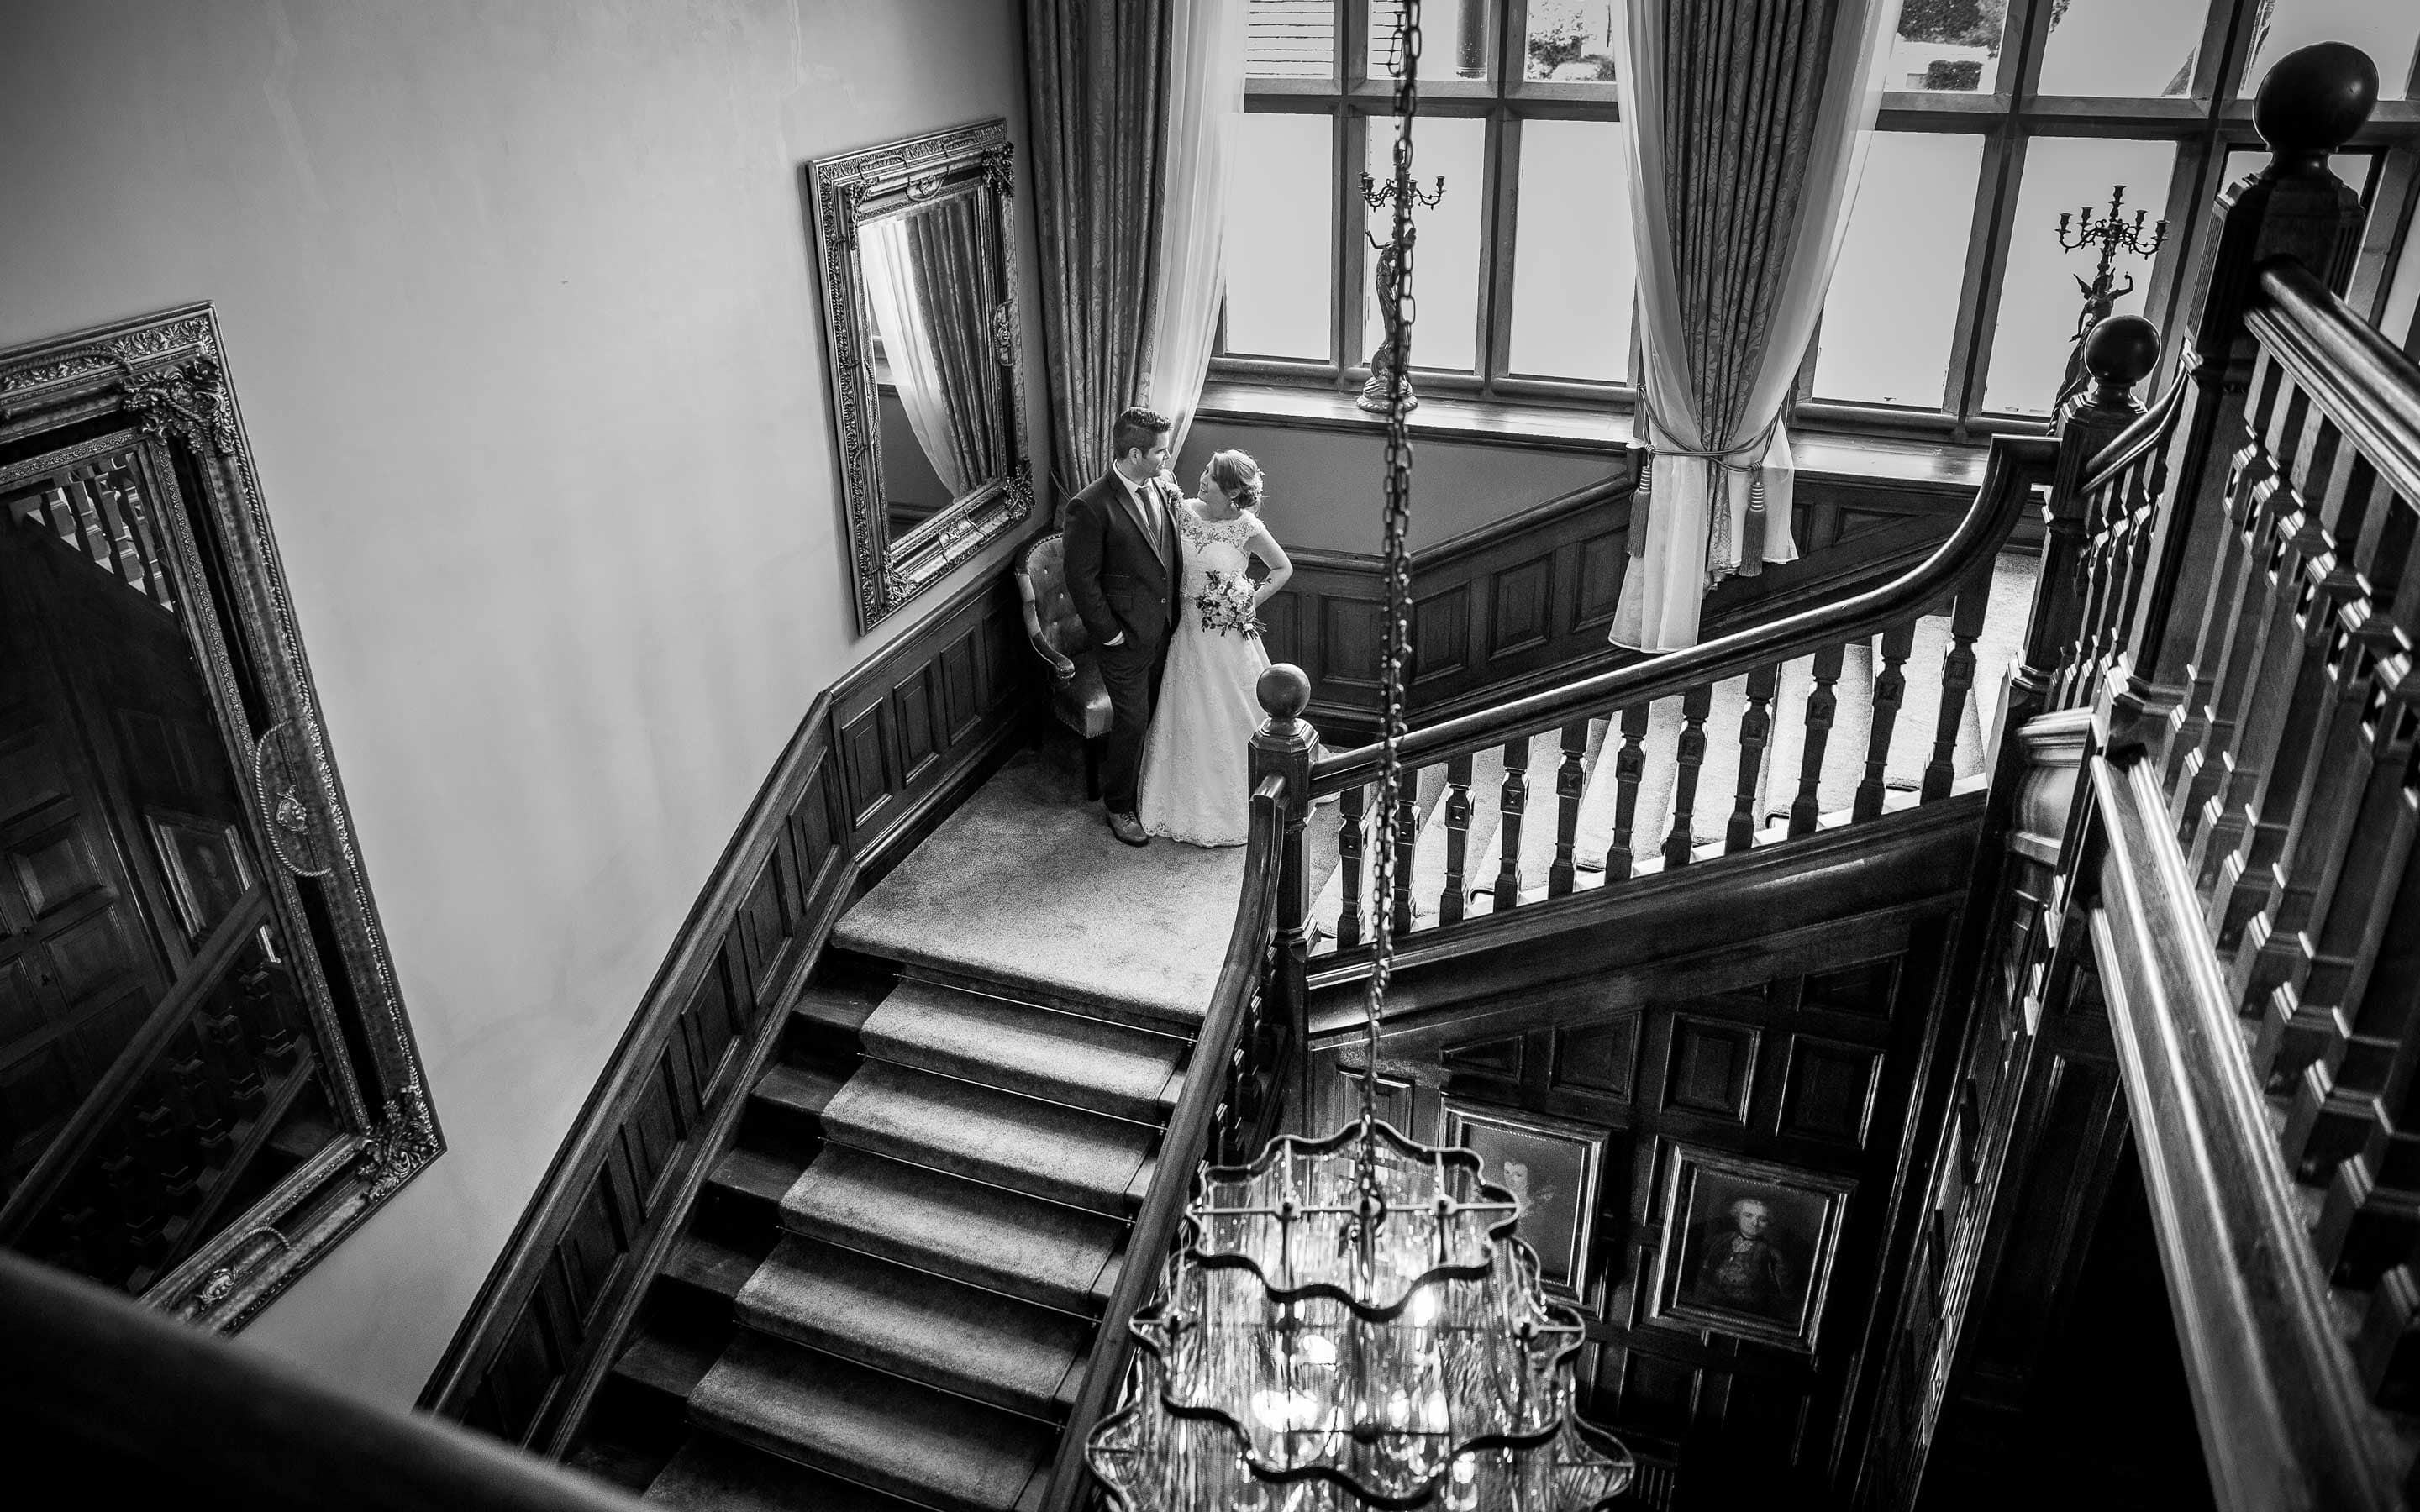 Bride and groom standing on the staircase